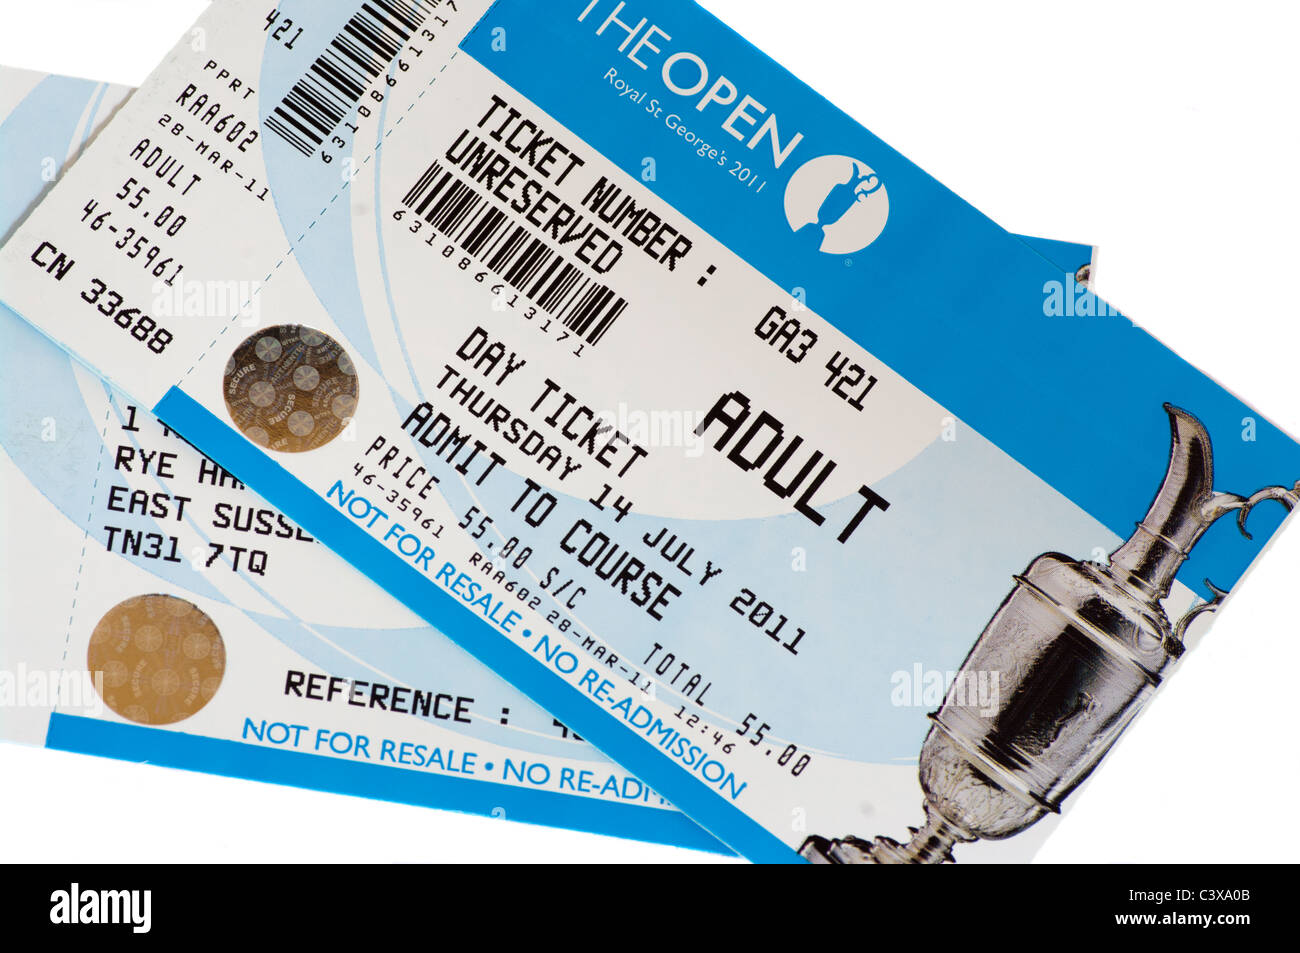 The Open Golf Championship Admission Tickets - Stock Image